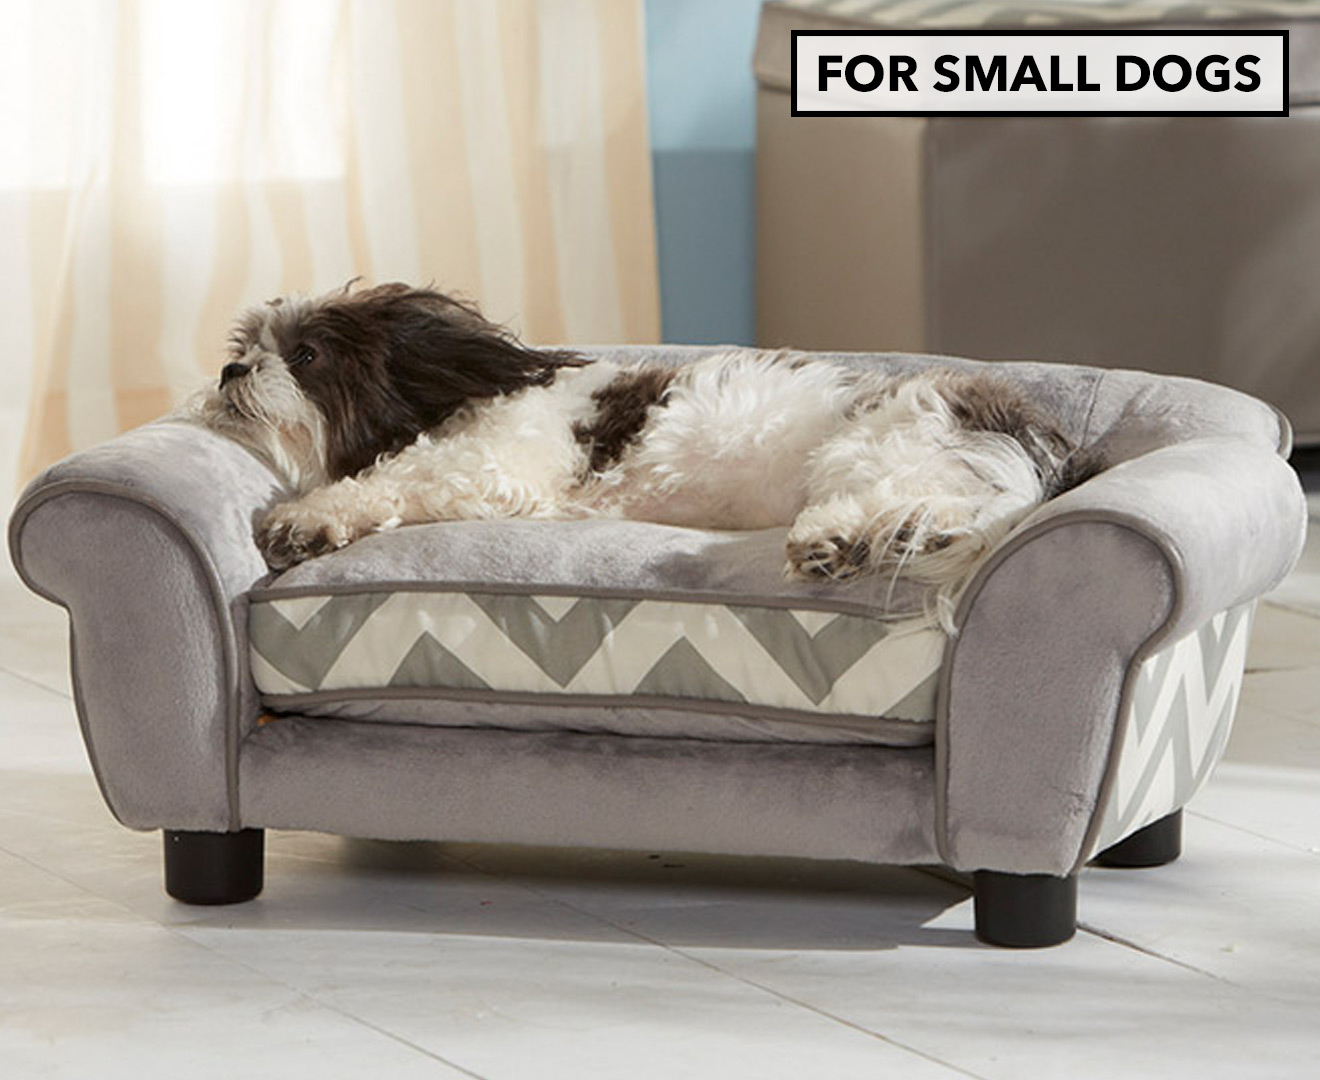 enchanted home mackenzie pet sofa sectional size plush couch bed for small dogs grey